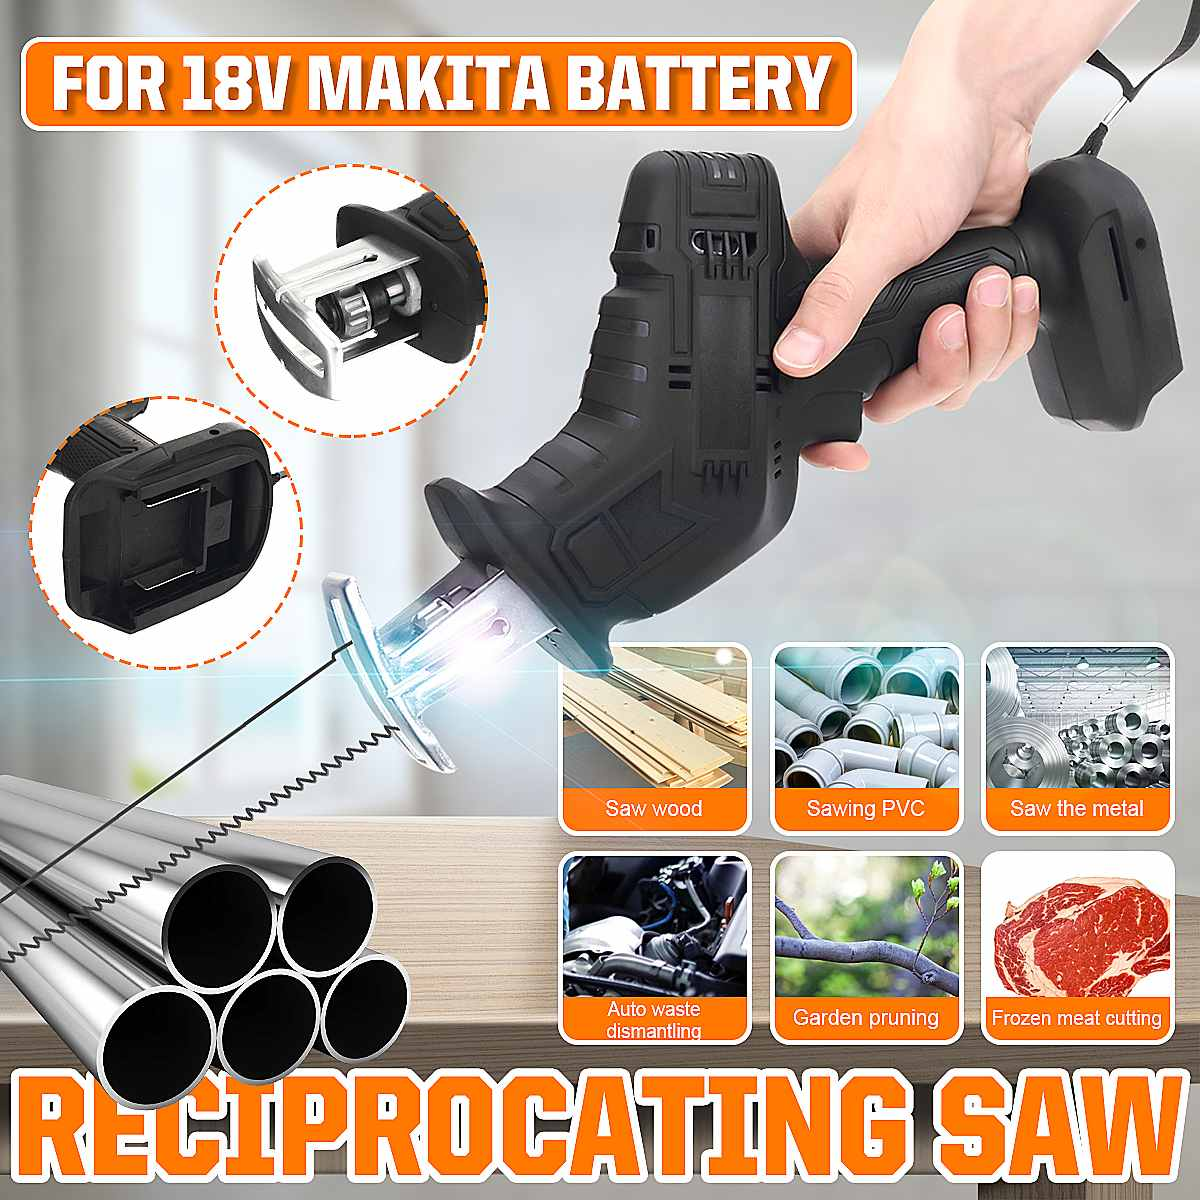 Electric Saw 18V Cordless Reciprocating Saw Metal Cutting Wood Cutting Tool For Makita 18V Battery